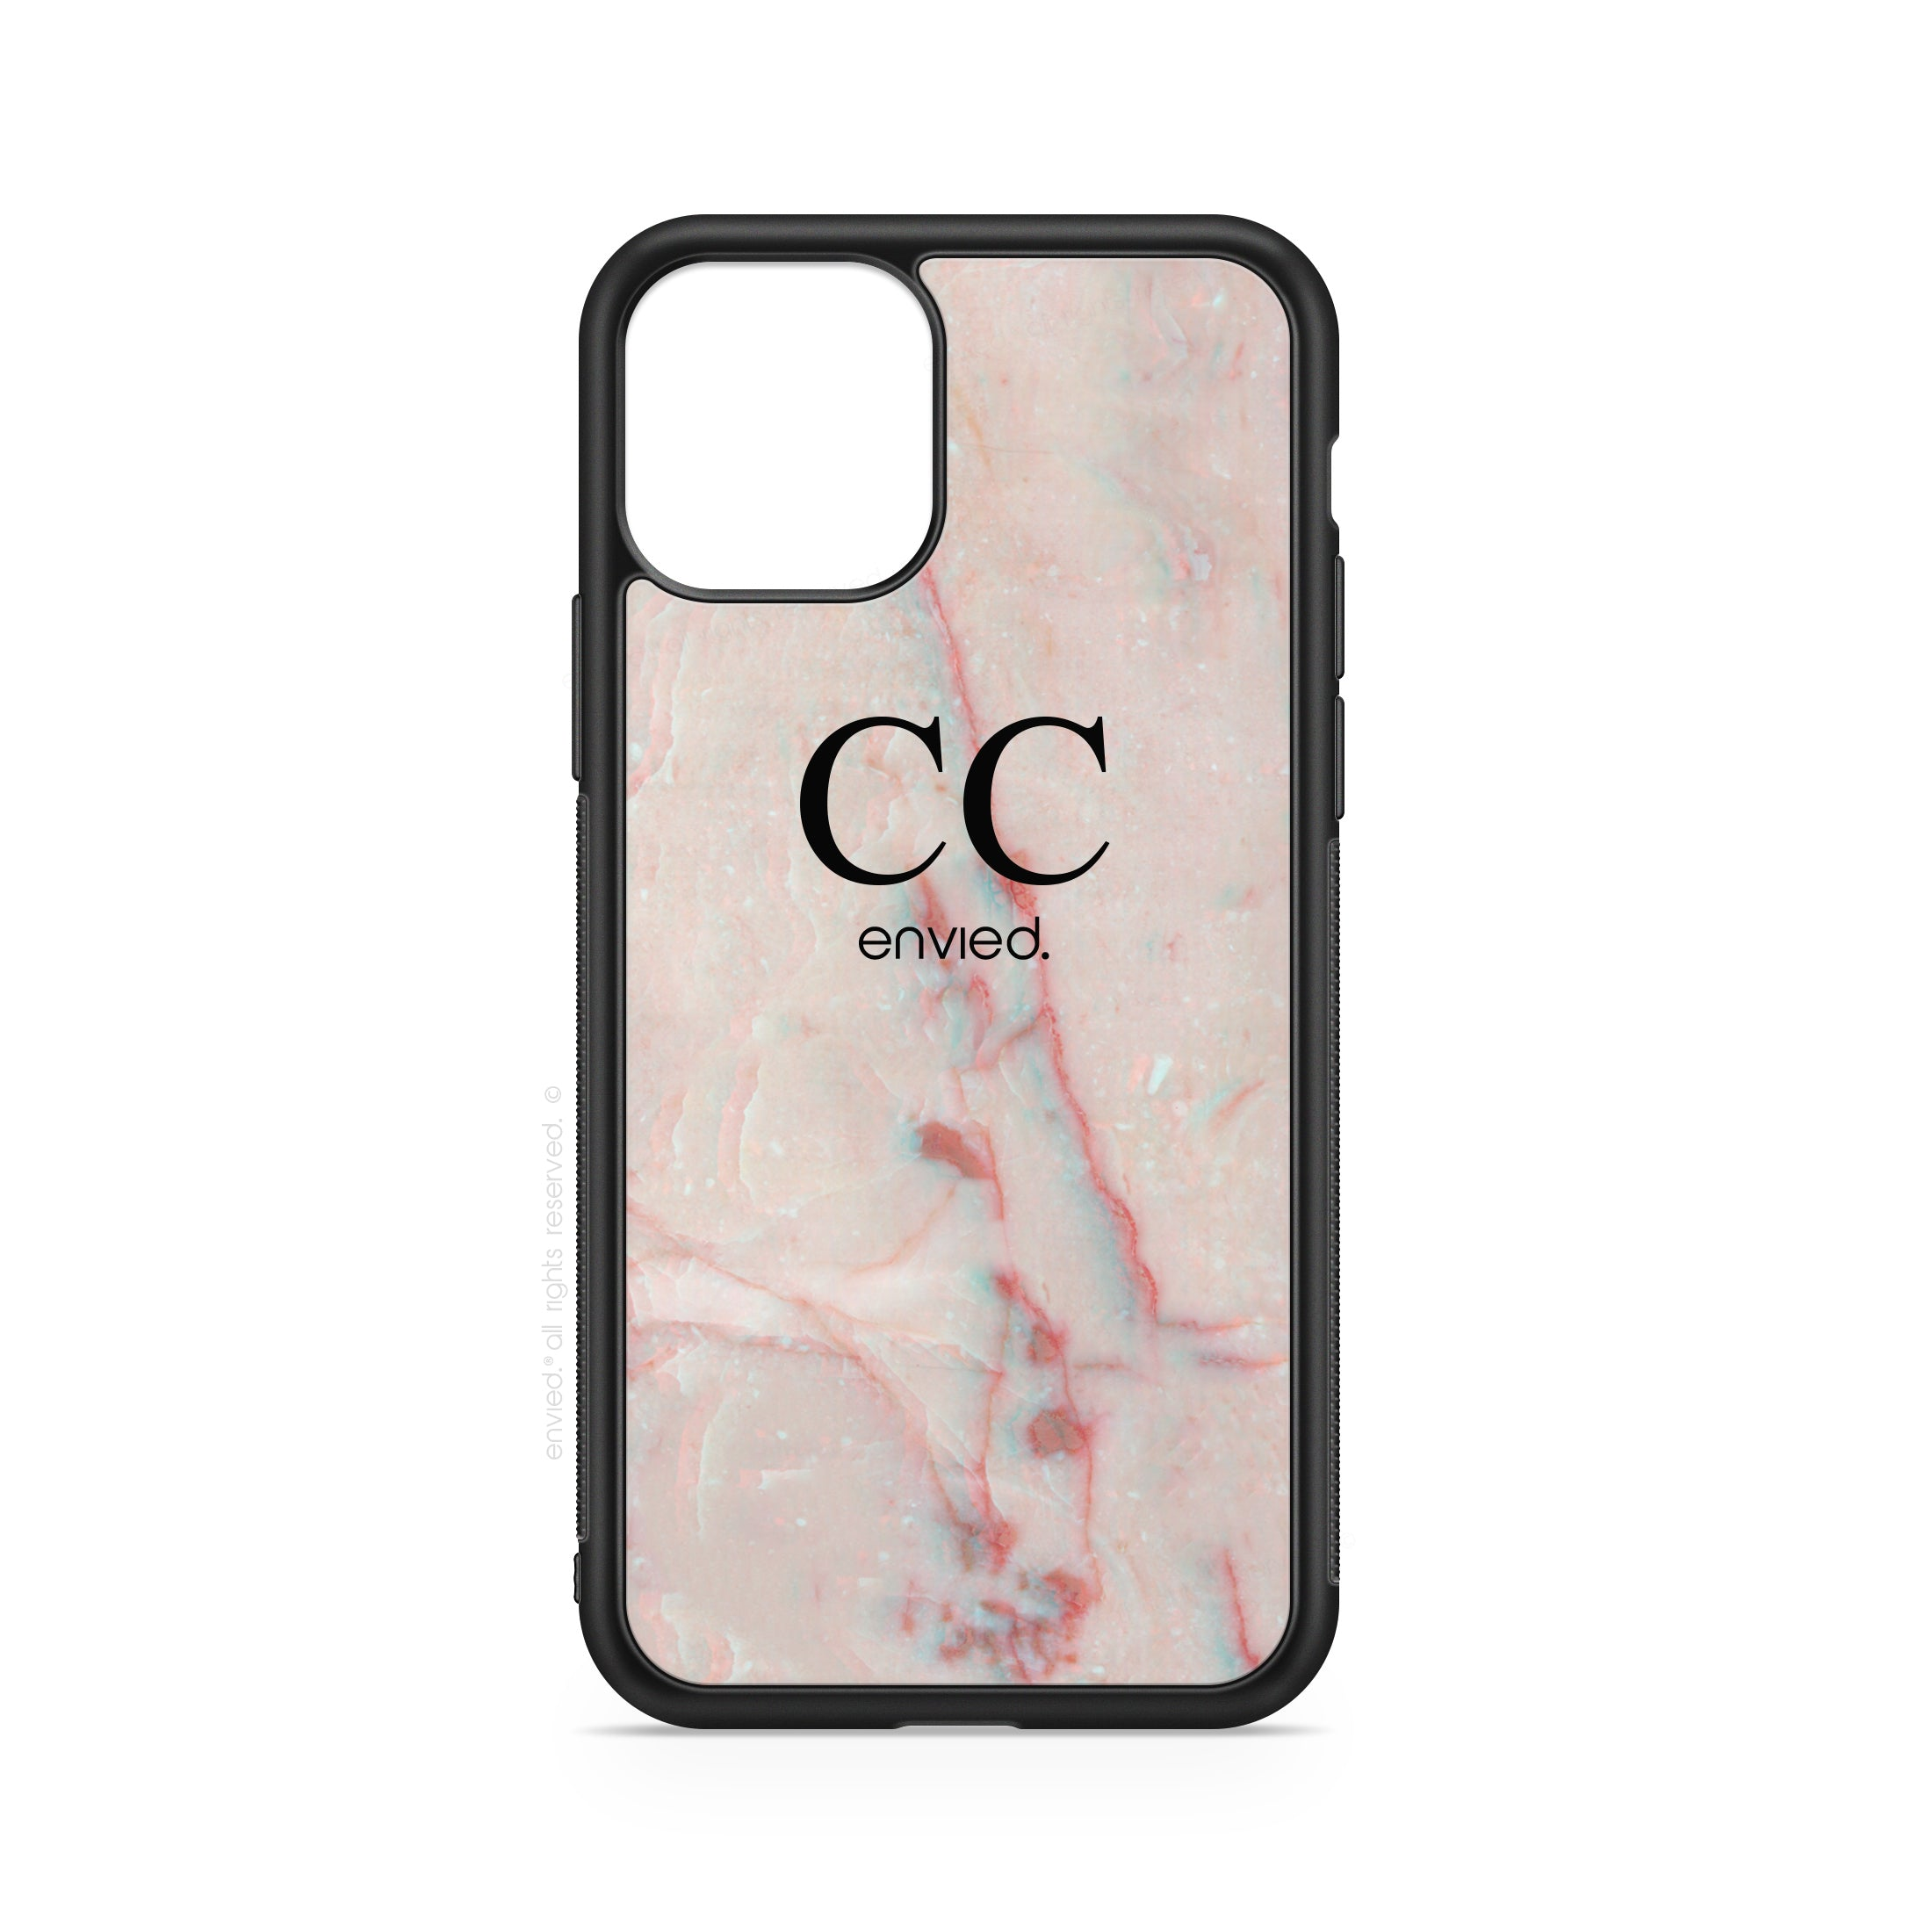 envied. high noble initials on pink marble